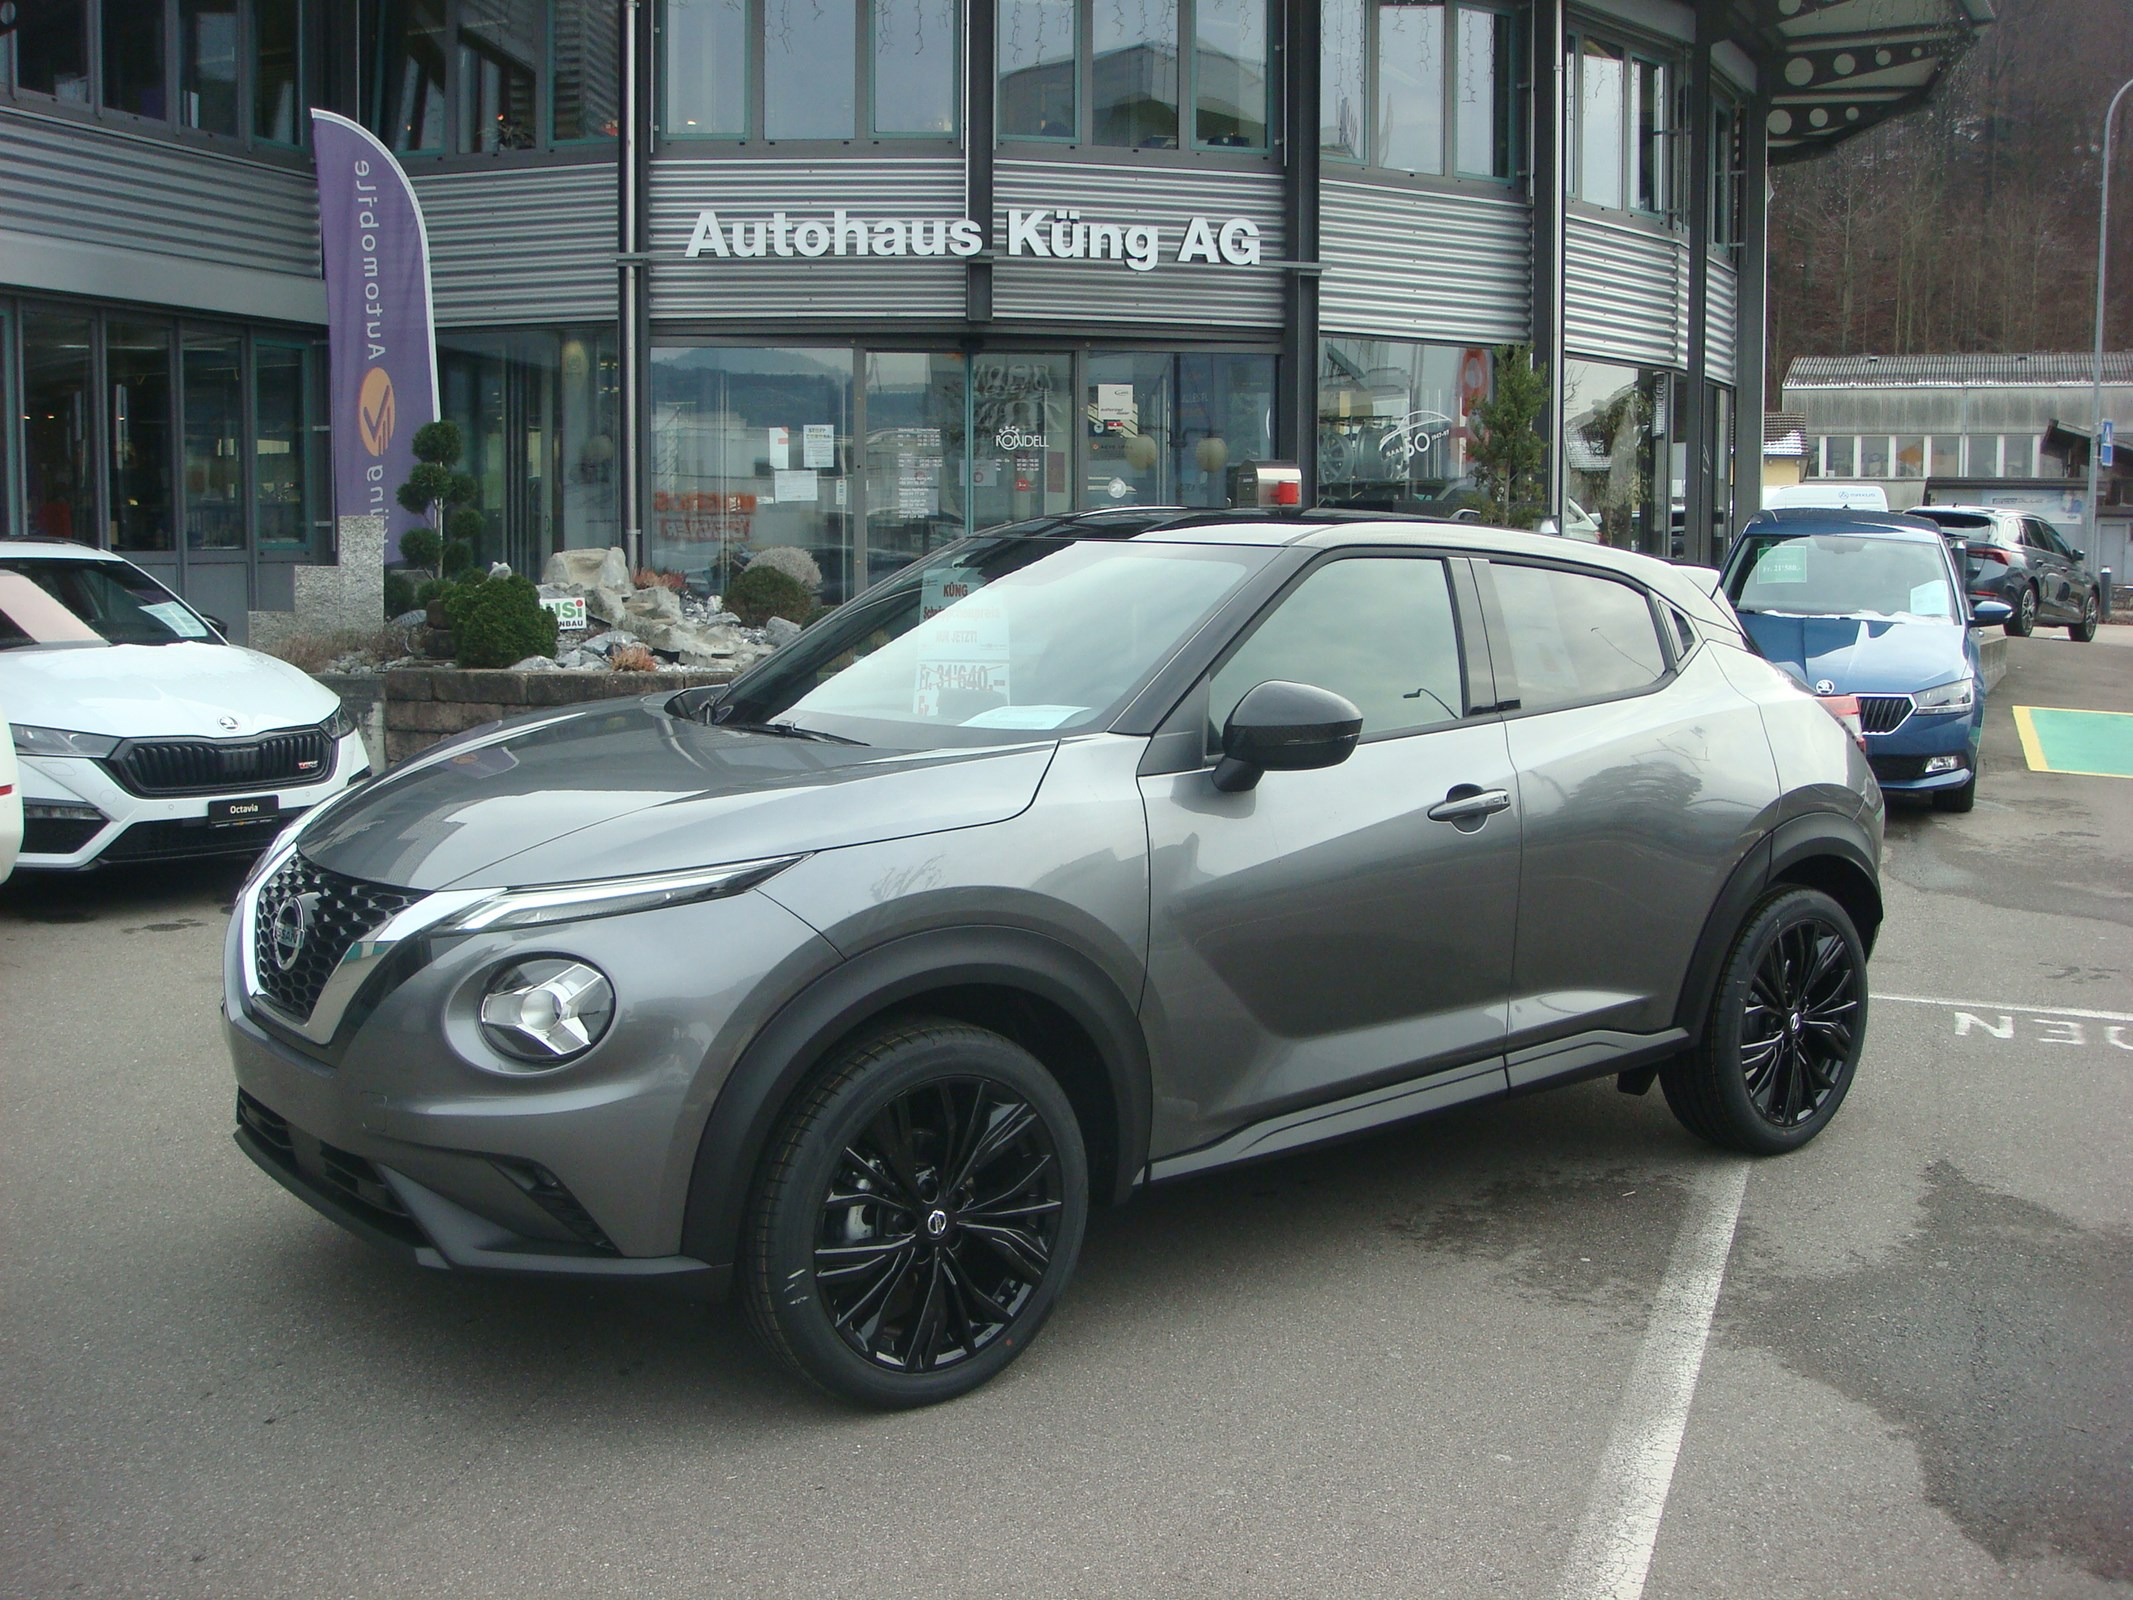 suv Nissan Juke 1.0 DIG-T Enigma DCT (Sondermodell)